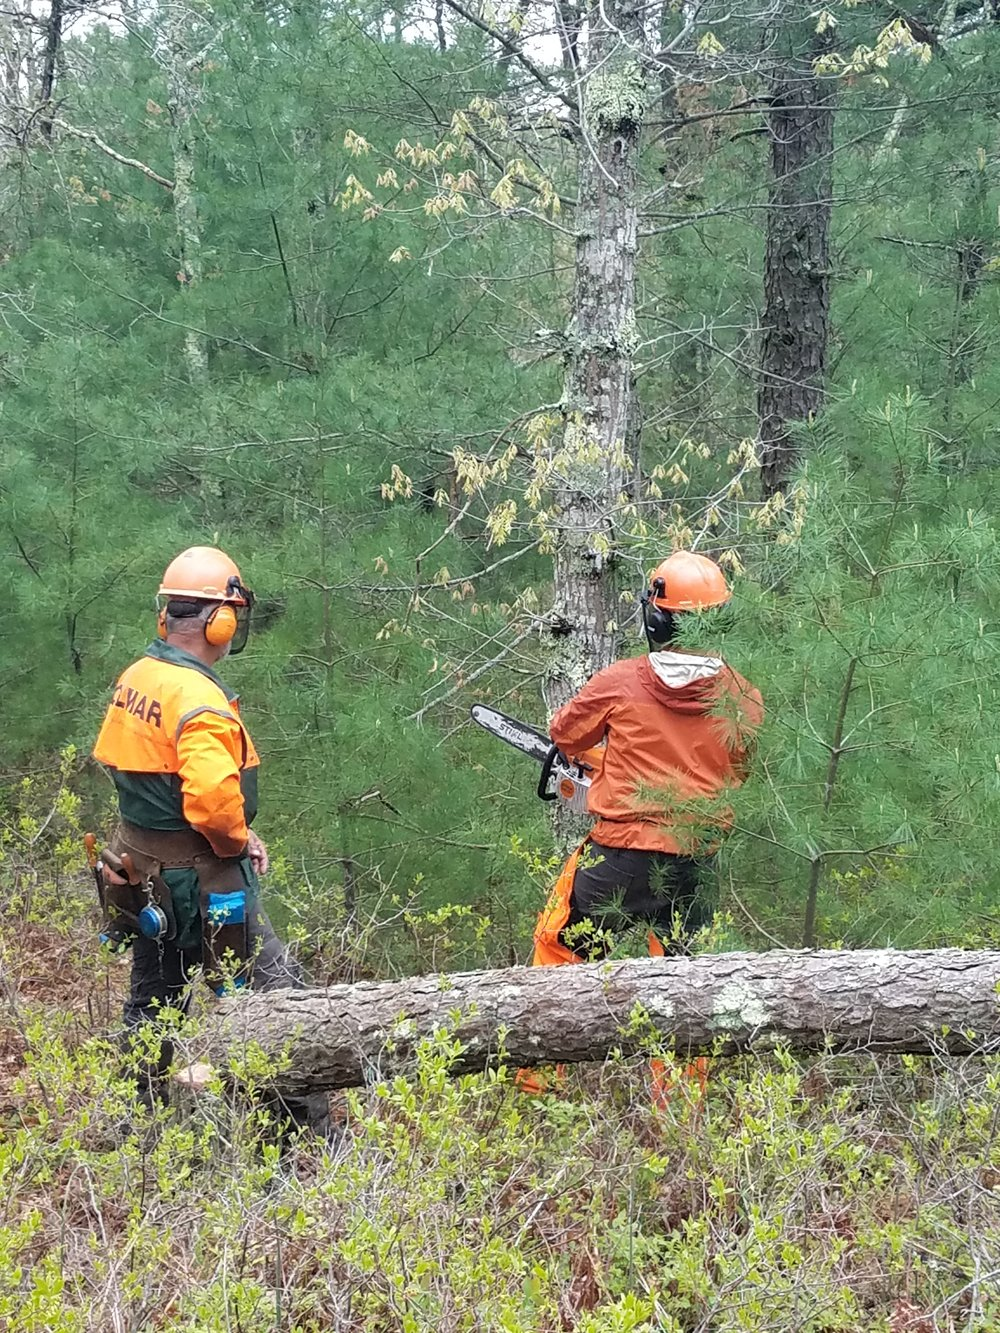 Land Stewardship Coordinator, Tommy Blanchard, working under the direction of chainsaw safety trainer, Bill Girard.